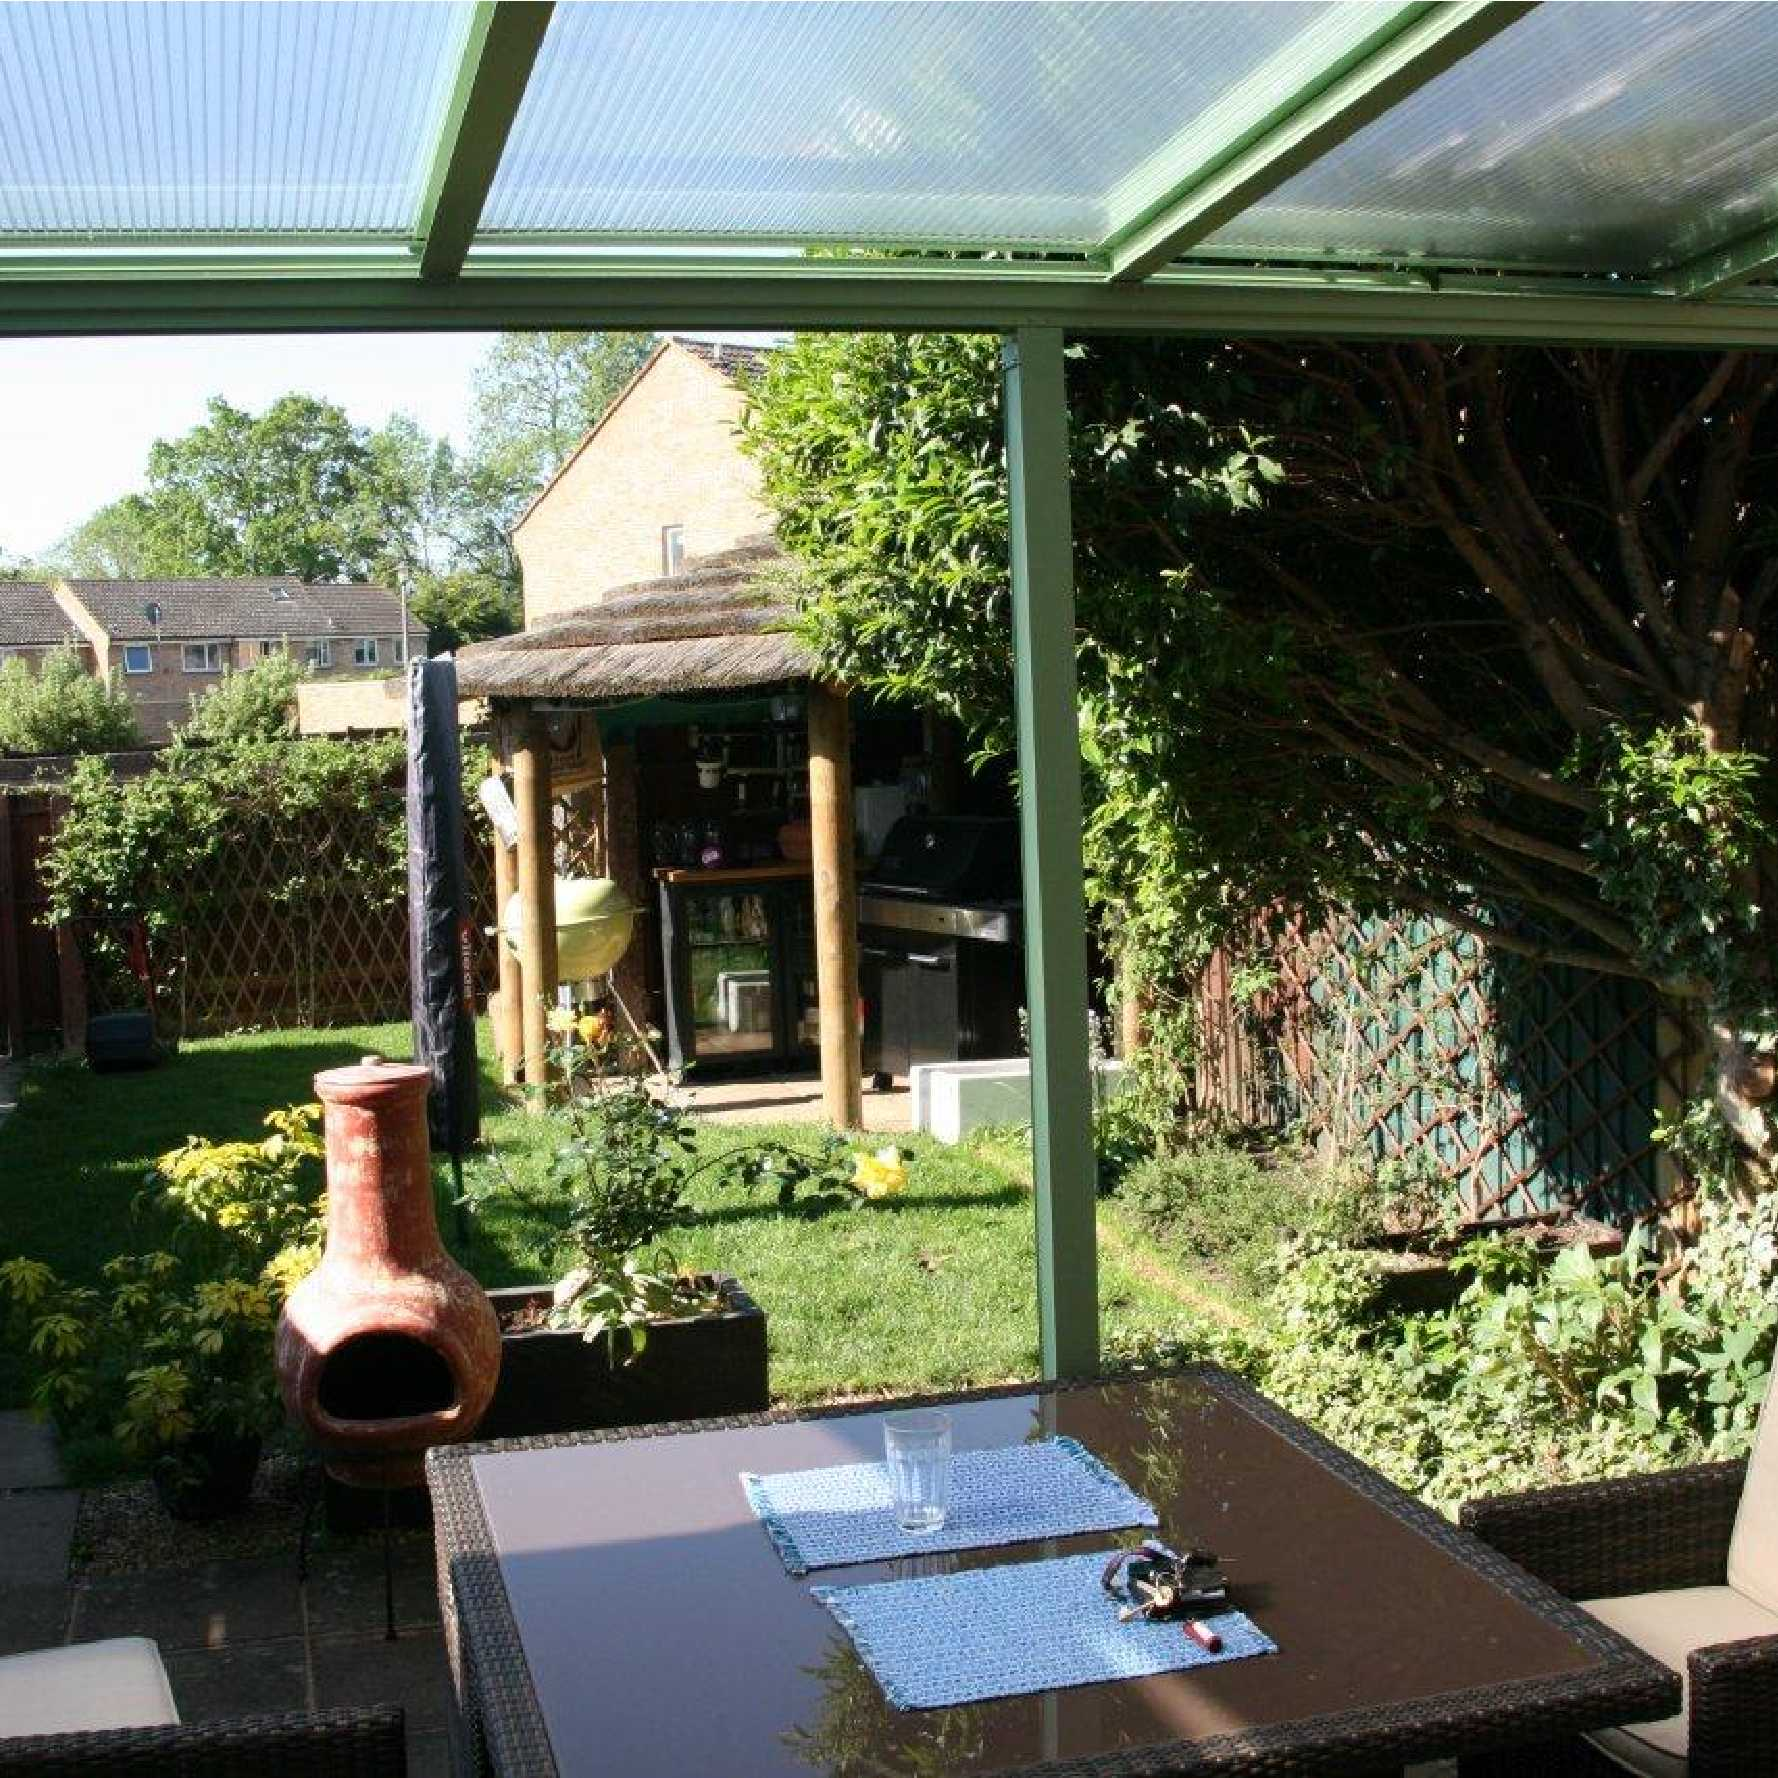 Affordable Omega Smart Lean-To Canopy with 16mm Polycarbonate Glazing - 4.2m (W) x 2.0m (P), (3) Supporting Posts